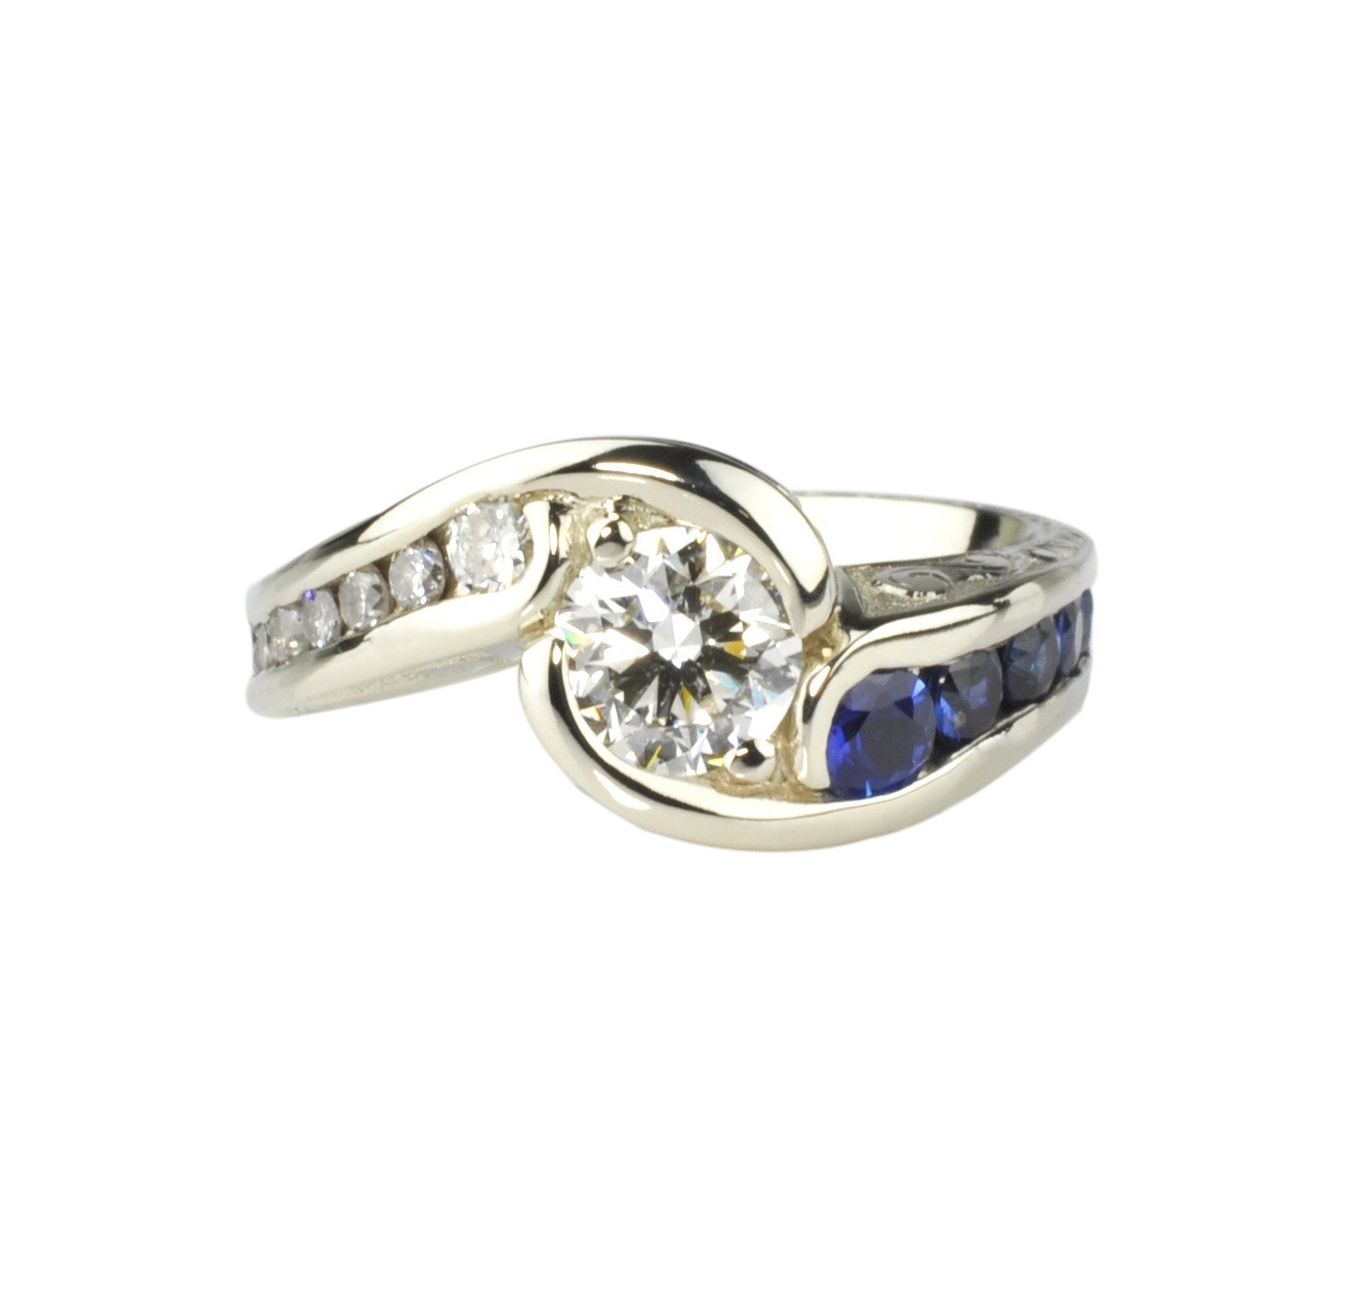 14k White Gold Ring with .90ct Round Brilliant Center